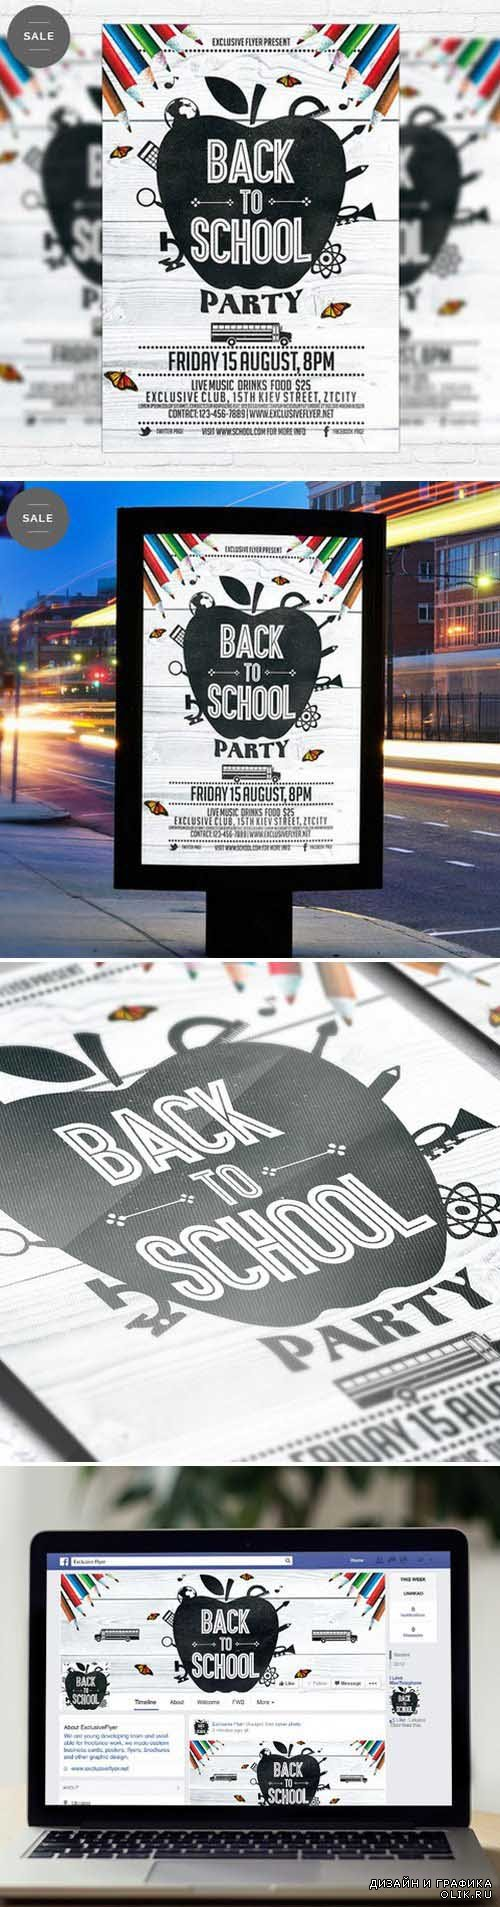 Flyer Template - Back To School Party Vol.3 + Facebook Cover